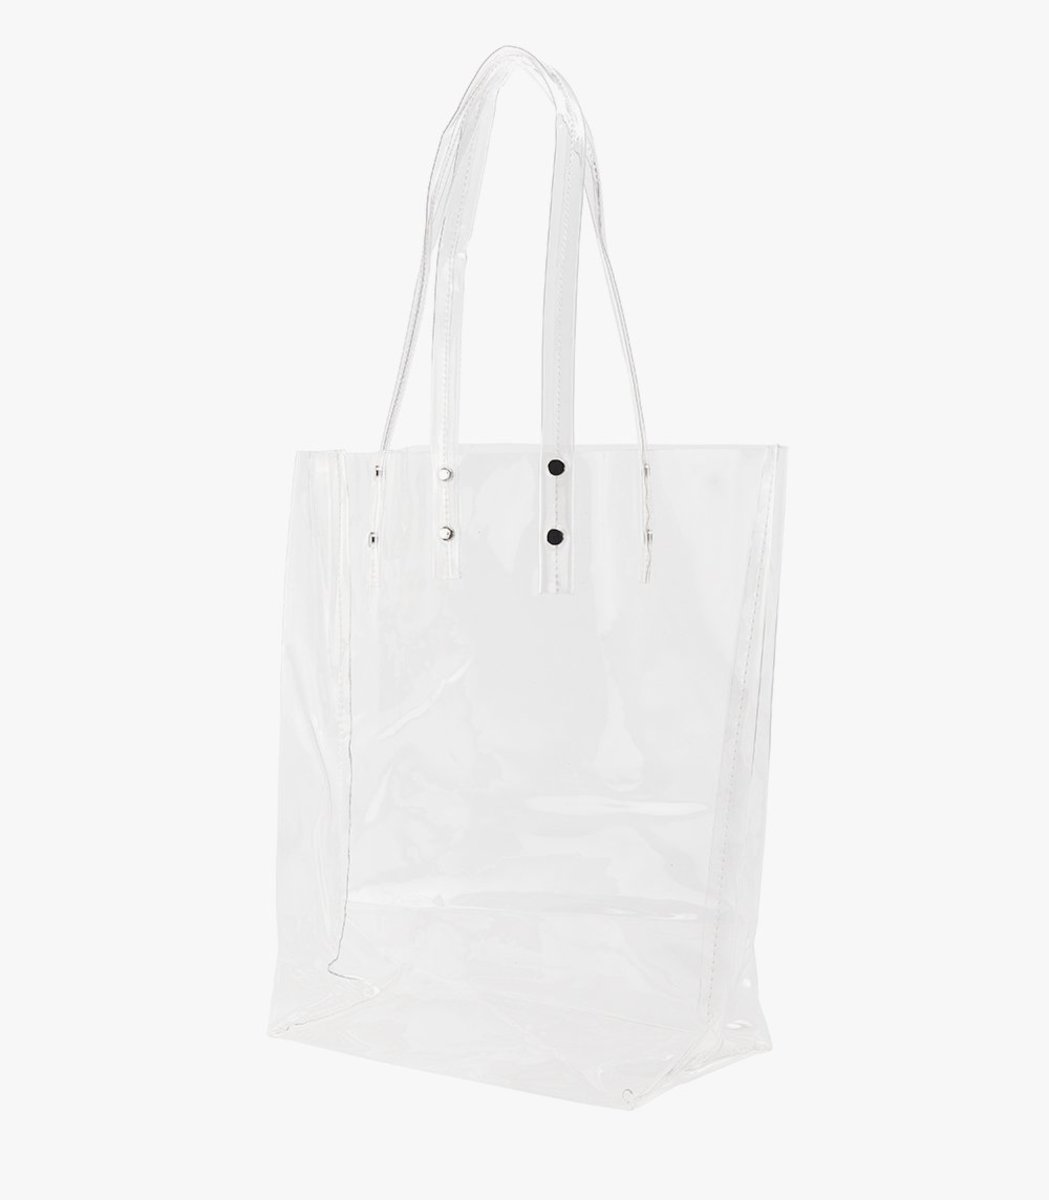 Genuine People Transparent PVC Tote, $60, available here.